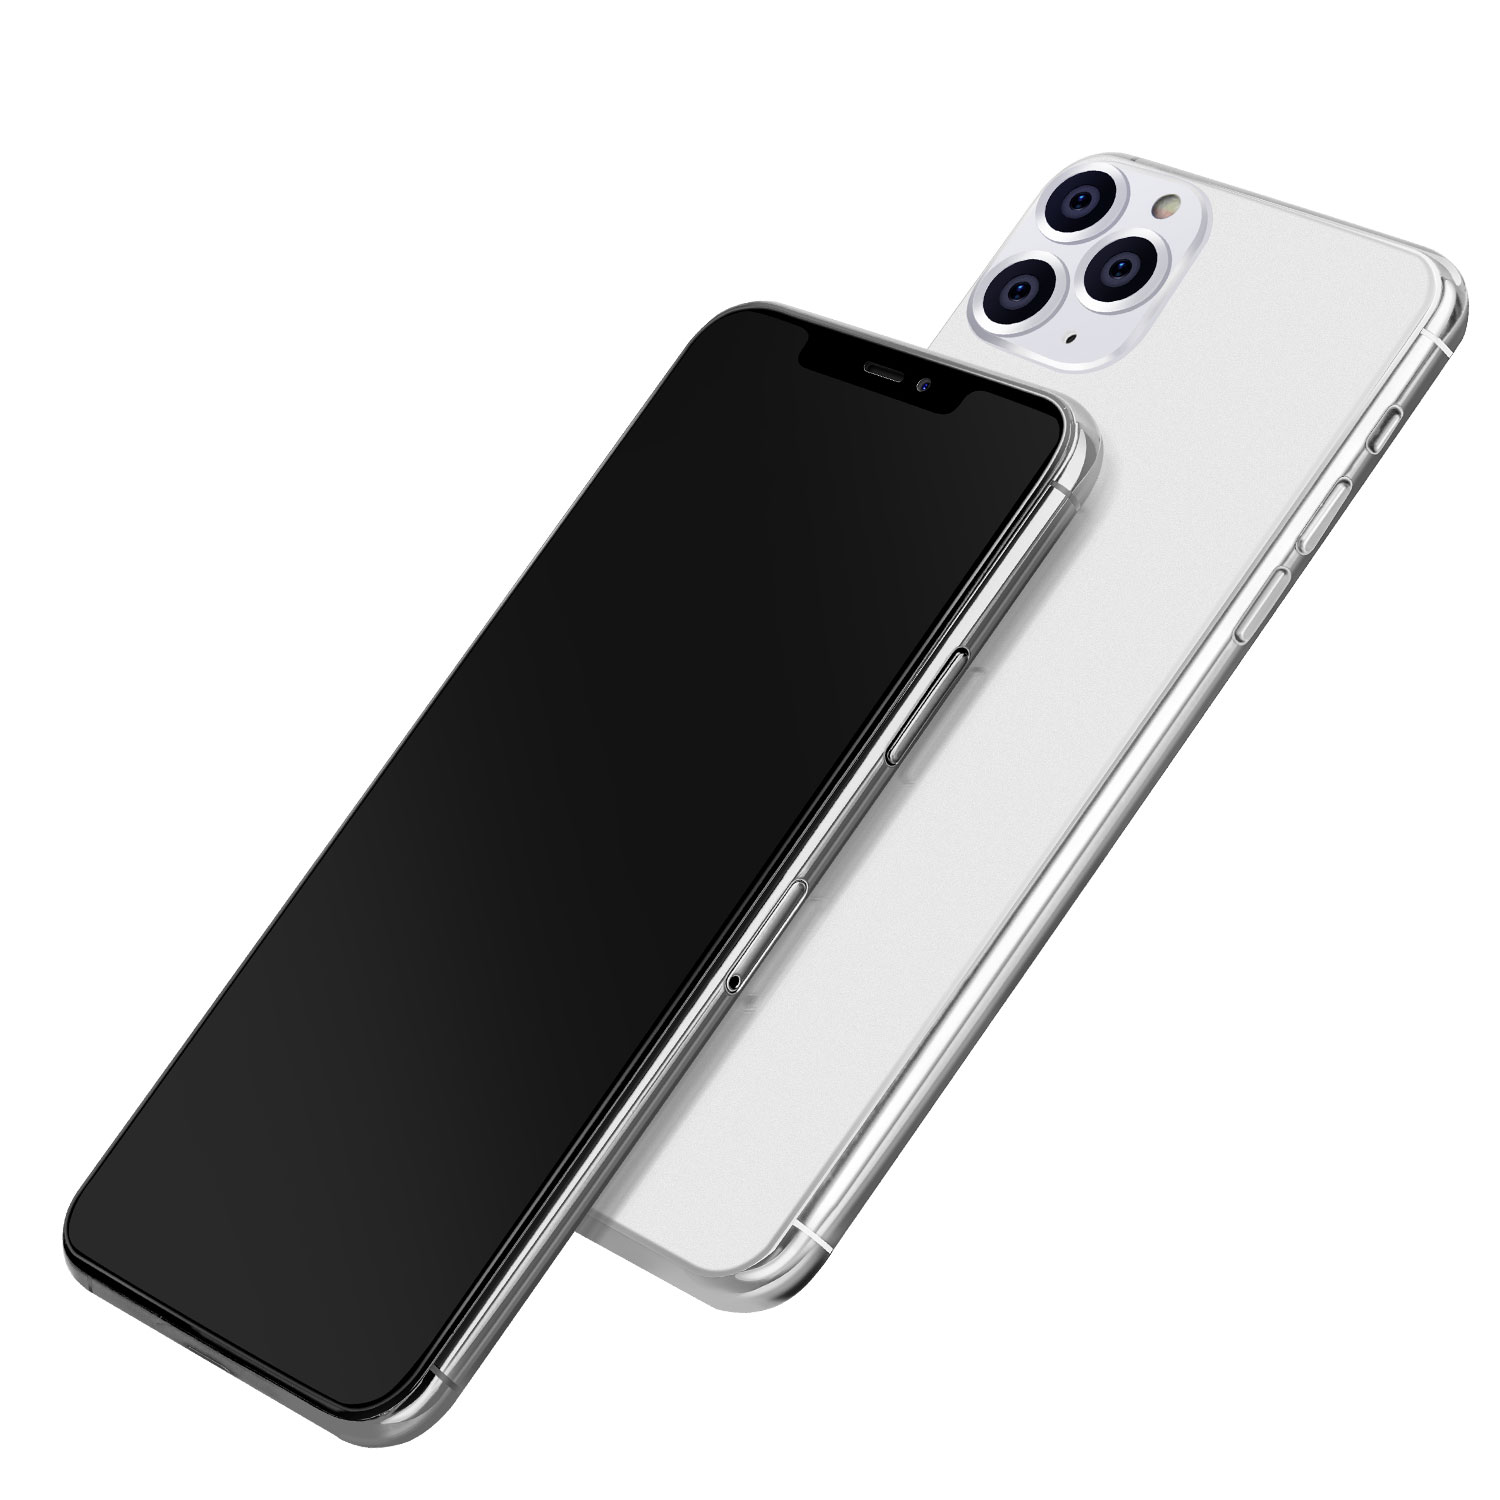 Non-Working 1:1 Fake Metal Phone Display Model Mould Dummy For IPhone 11 XS MAX XR X 8 8 Plus Dummy Case Display Toy